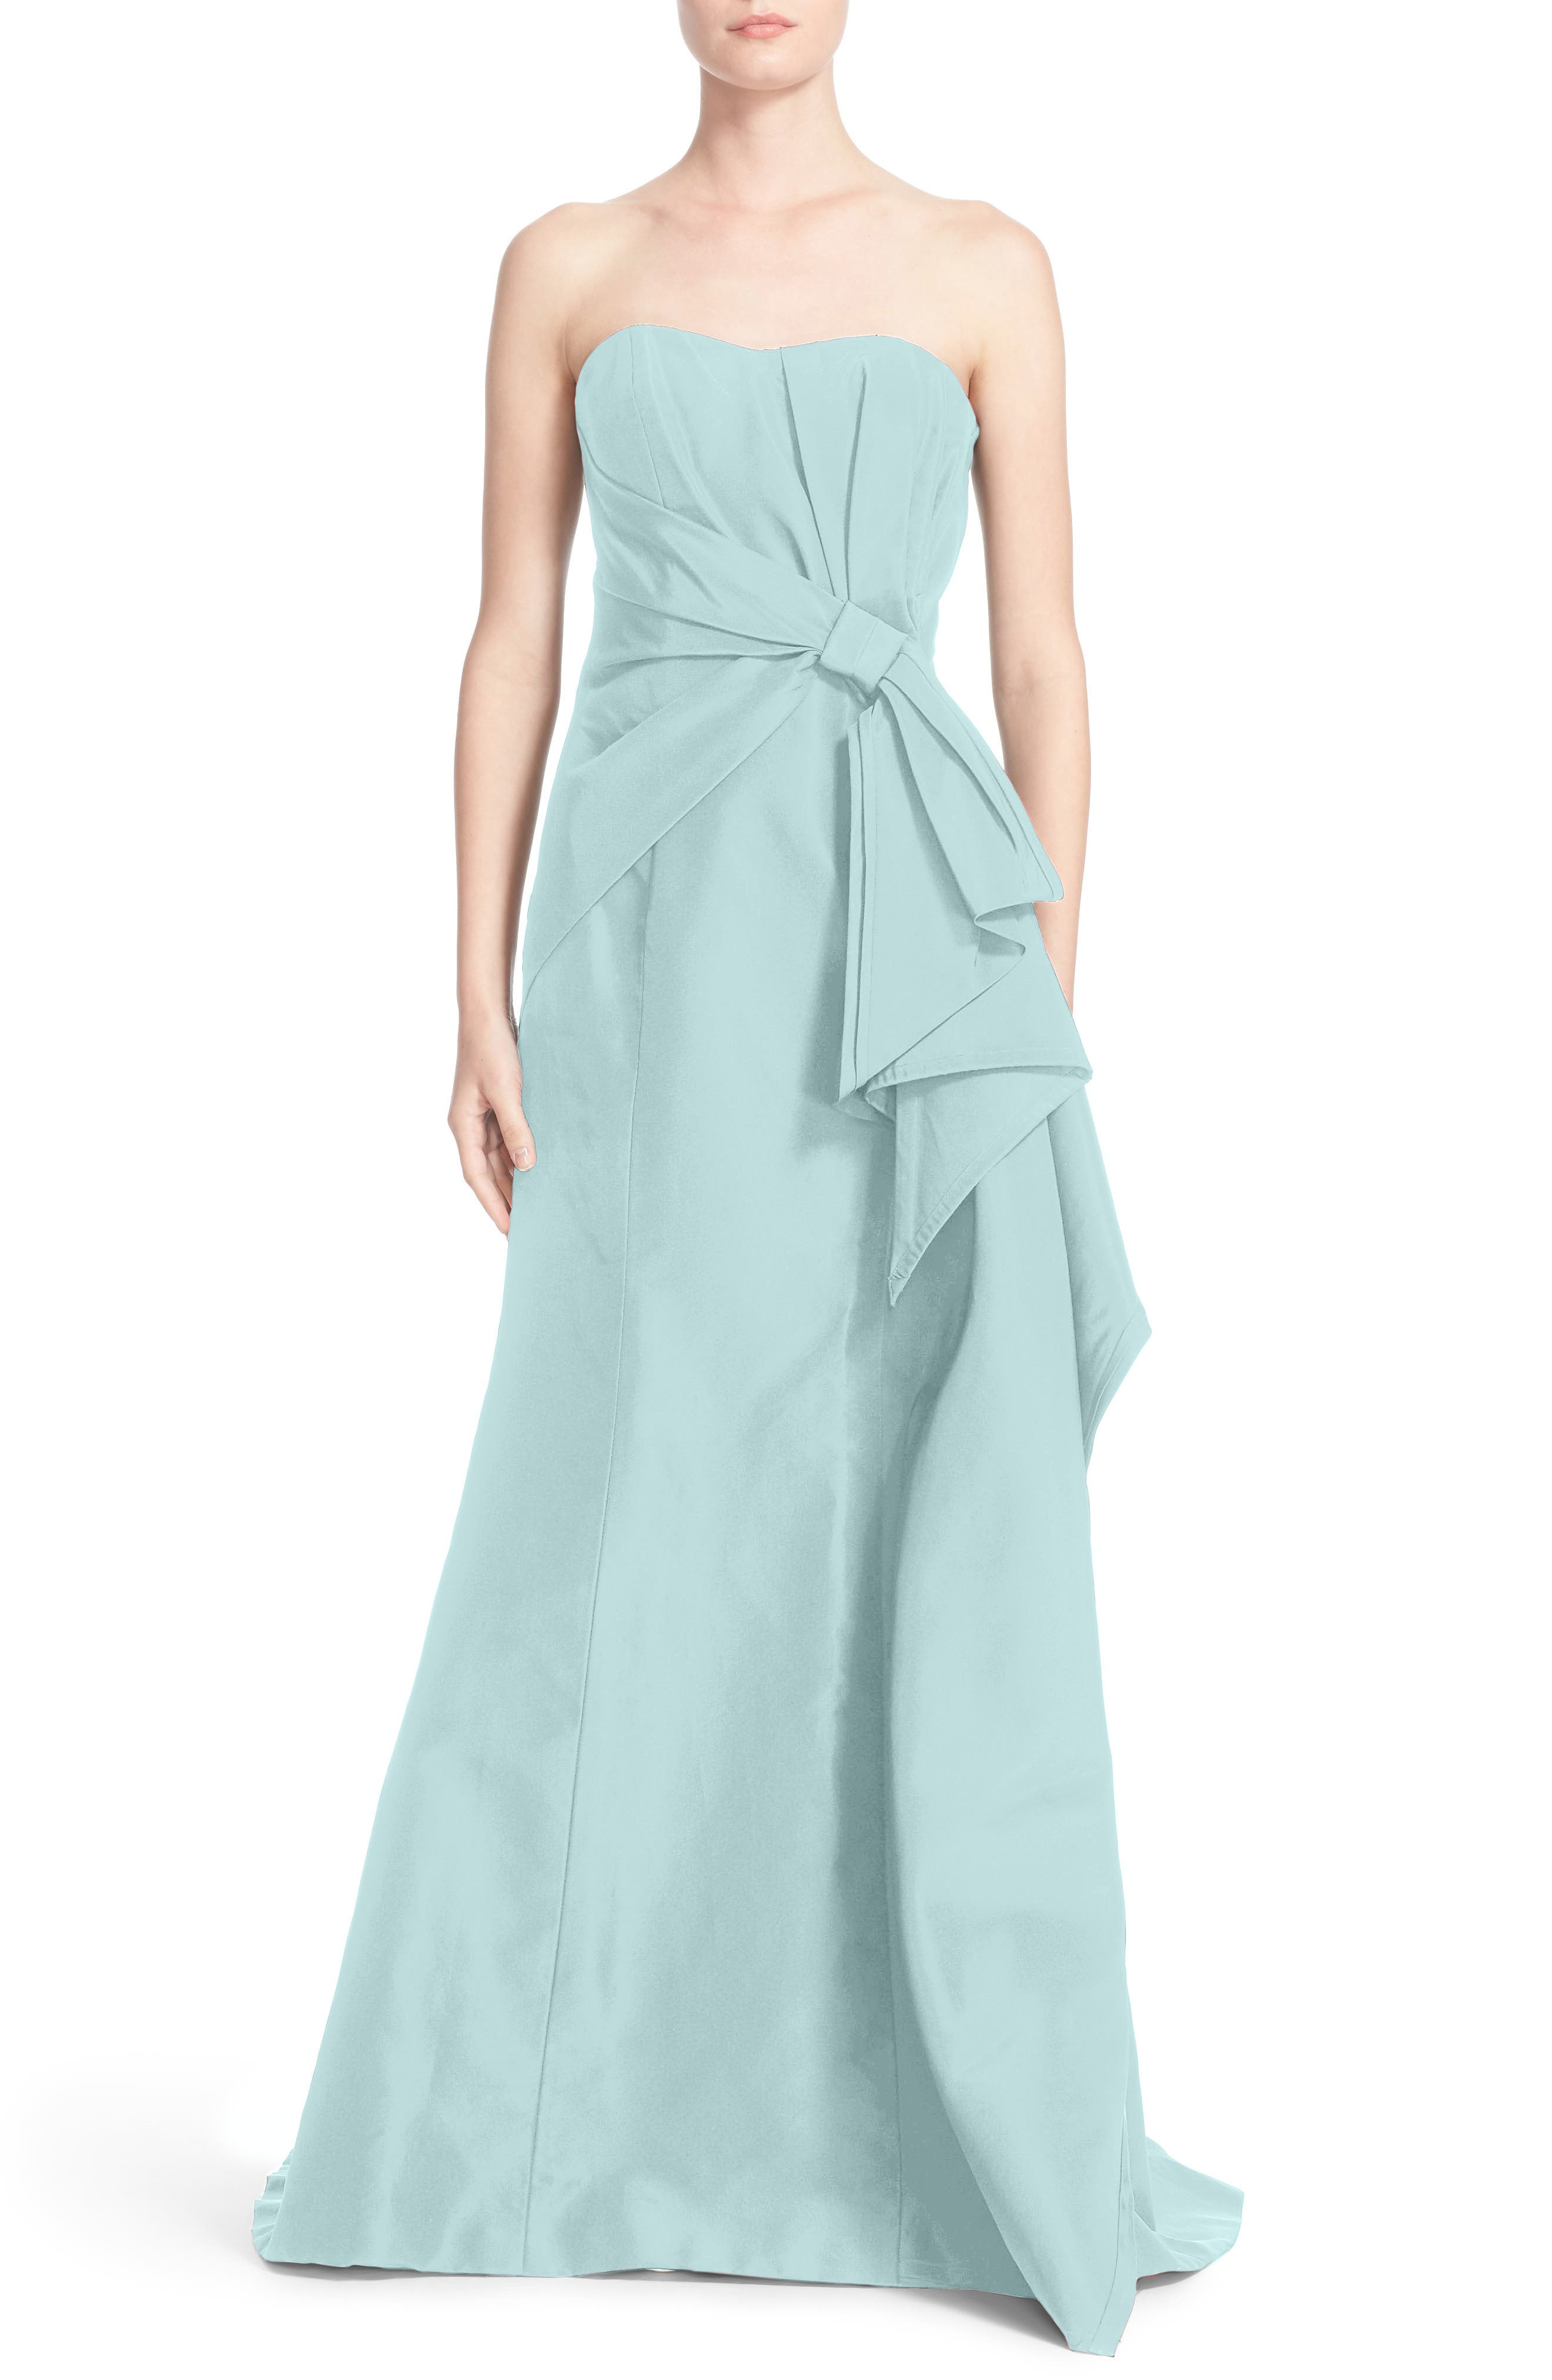 Alternate Image 1 Selected - Carolina Herrera Bow Detail Strapless Silk Faille Gown